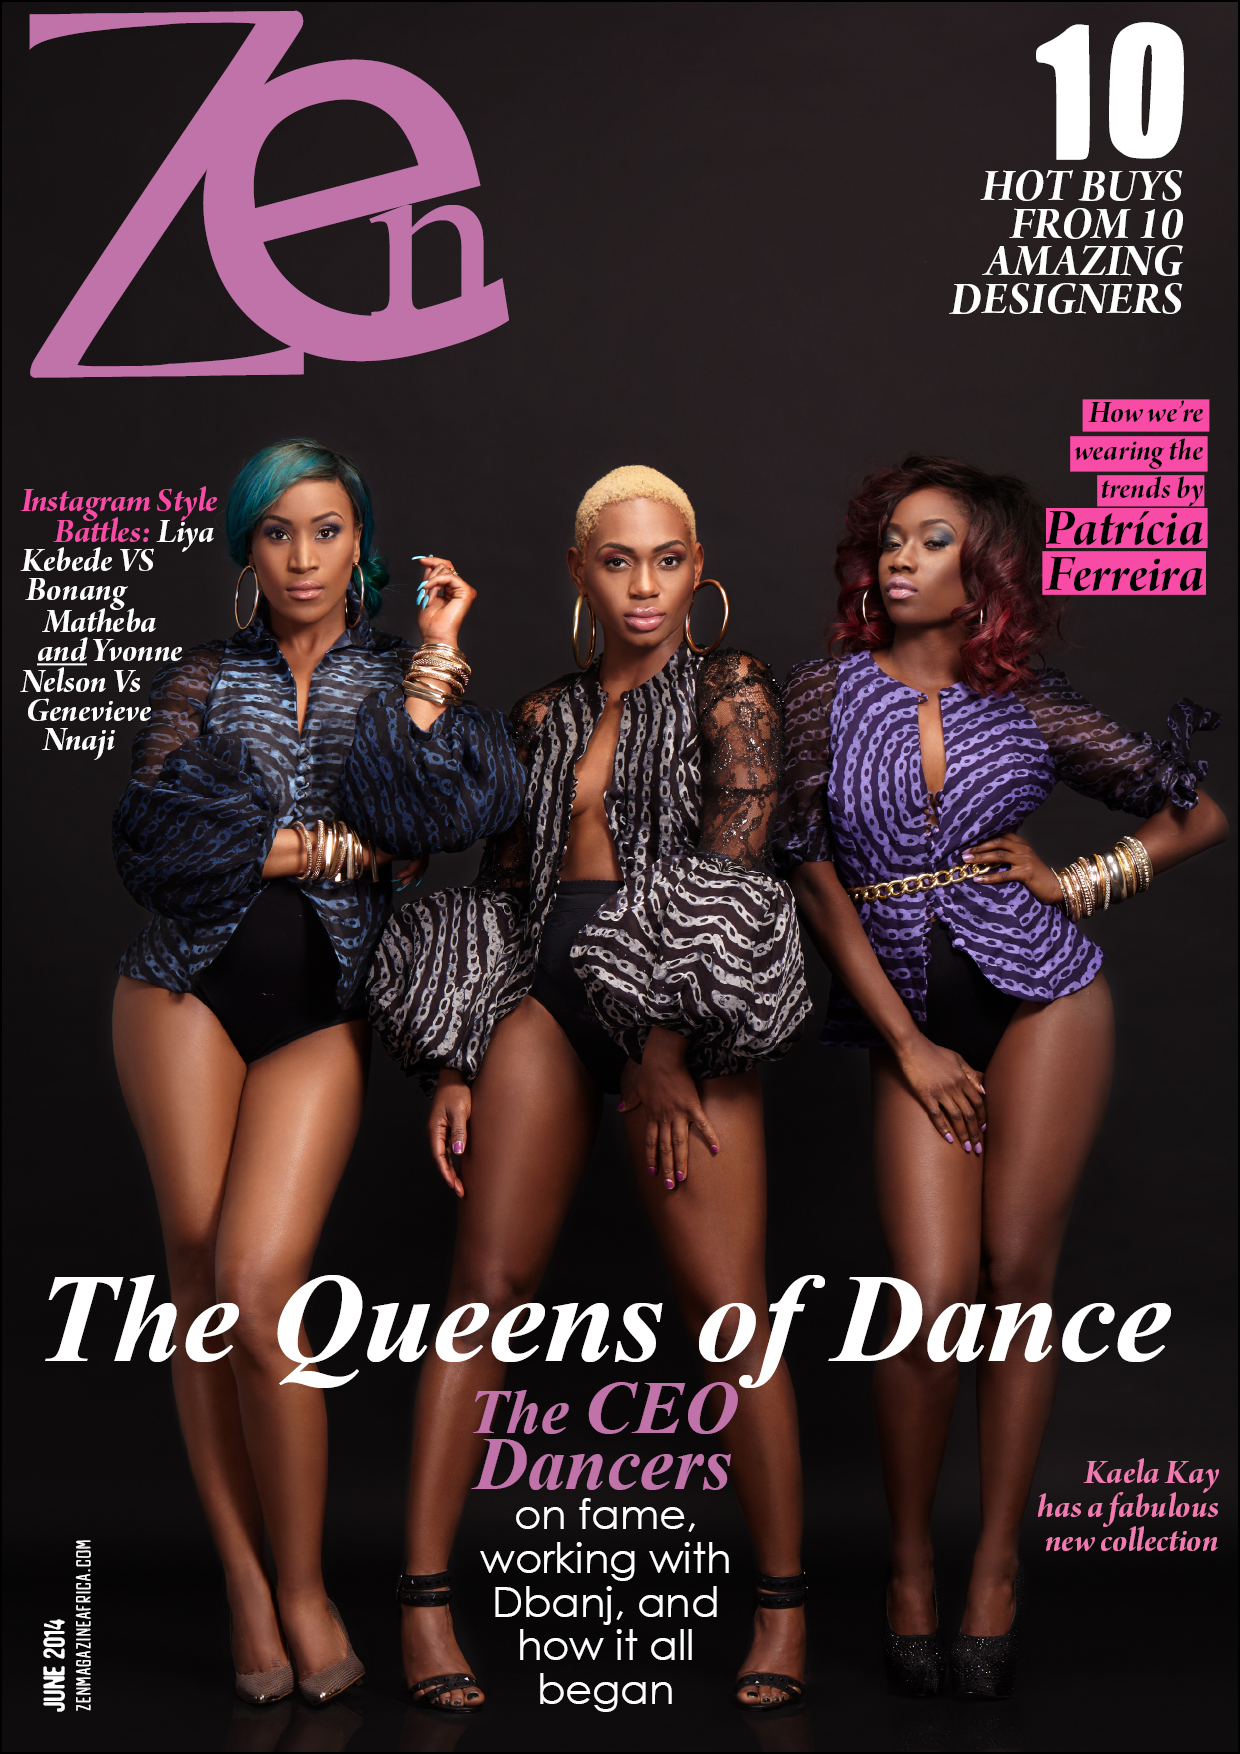 Zen+Magazine+CEO+Dancers+June+2014